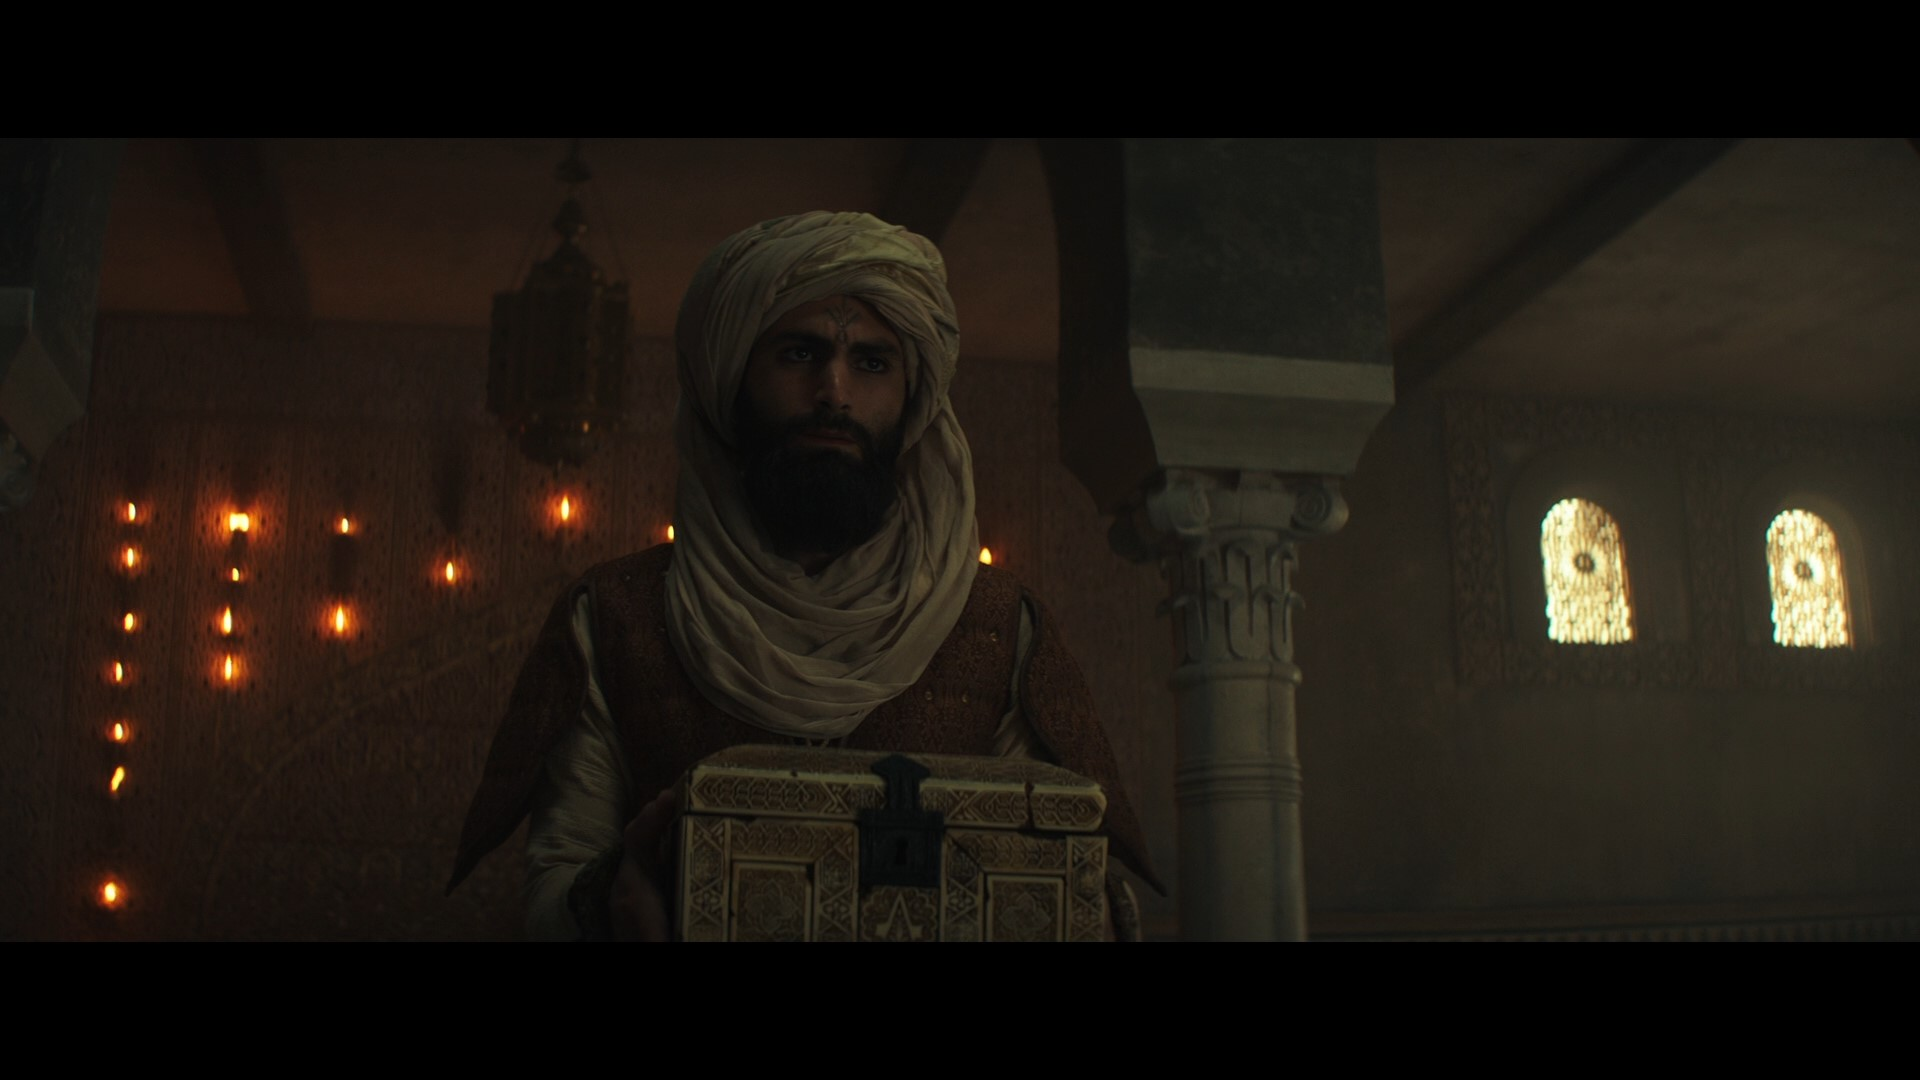 ASSASSIN'S CREED (2016) - Apple of Eden and Chest - Image 19 of 20